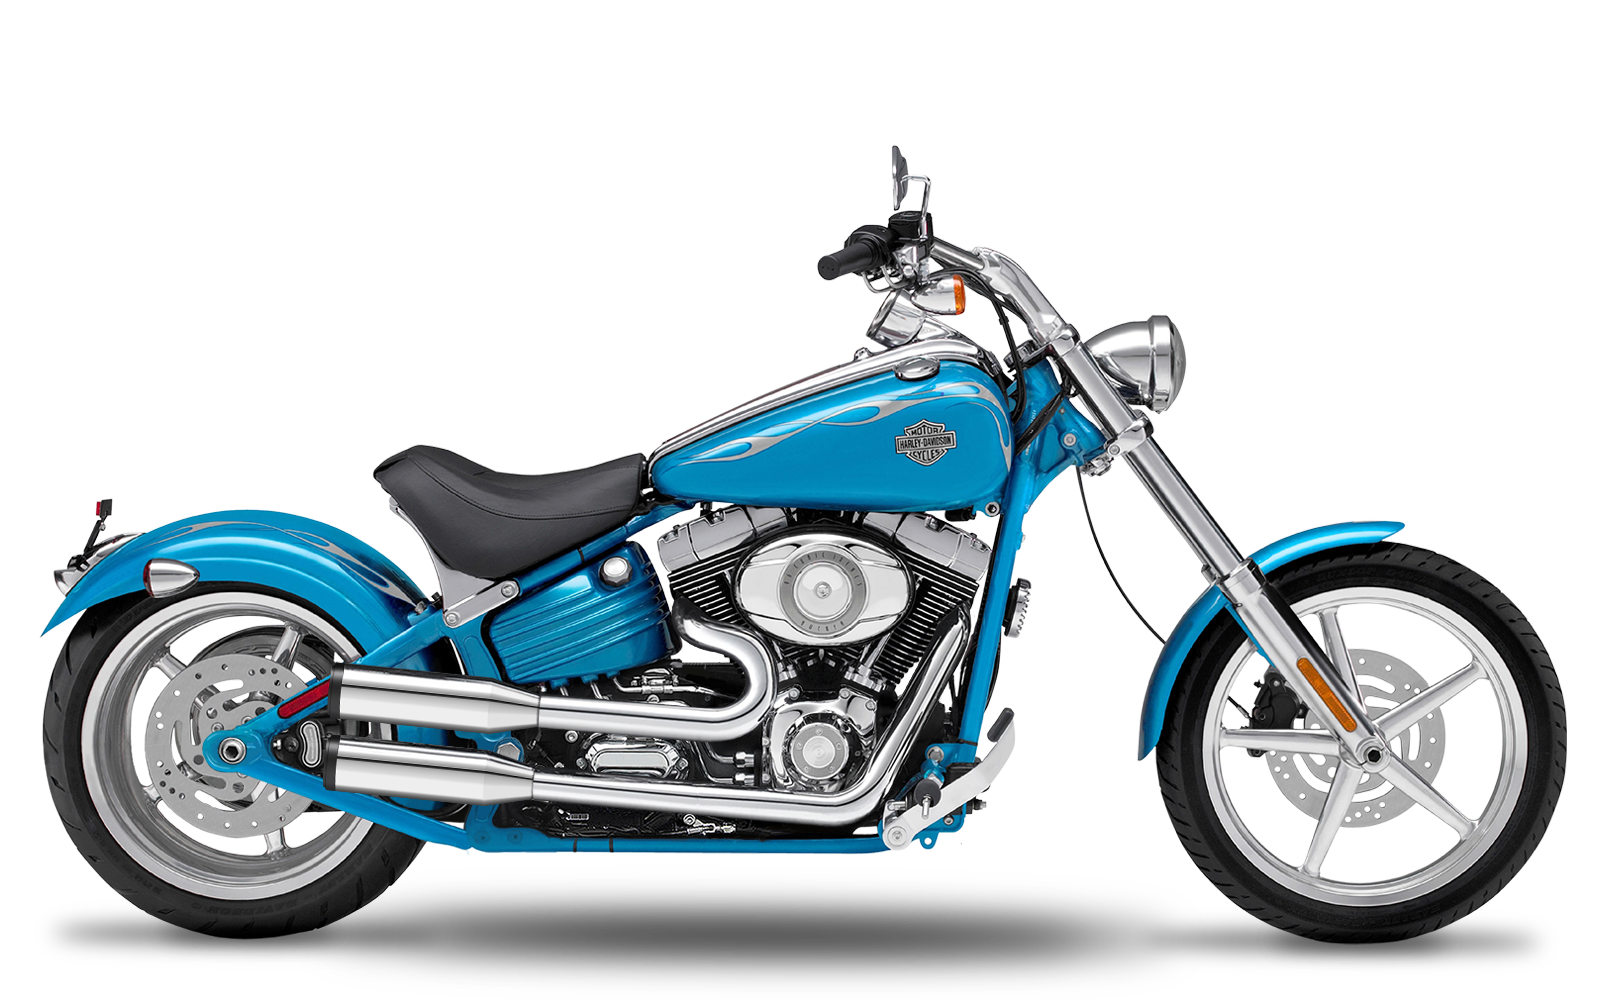 Softail - Rocker - TC96 - 2007-2011 - Complete systems